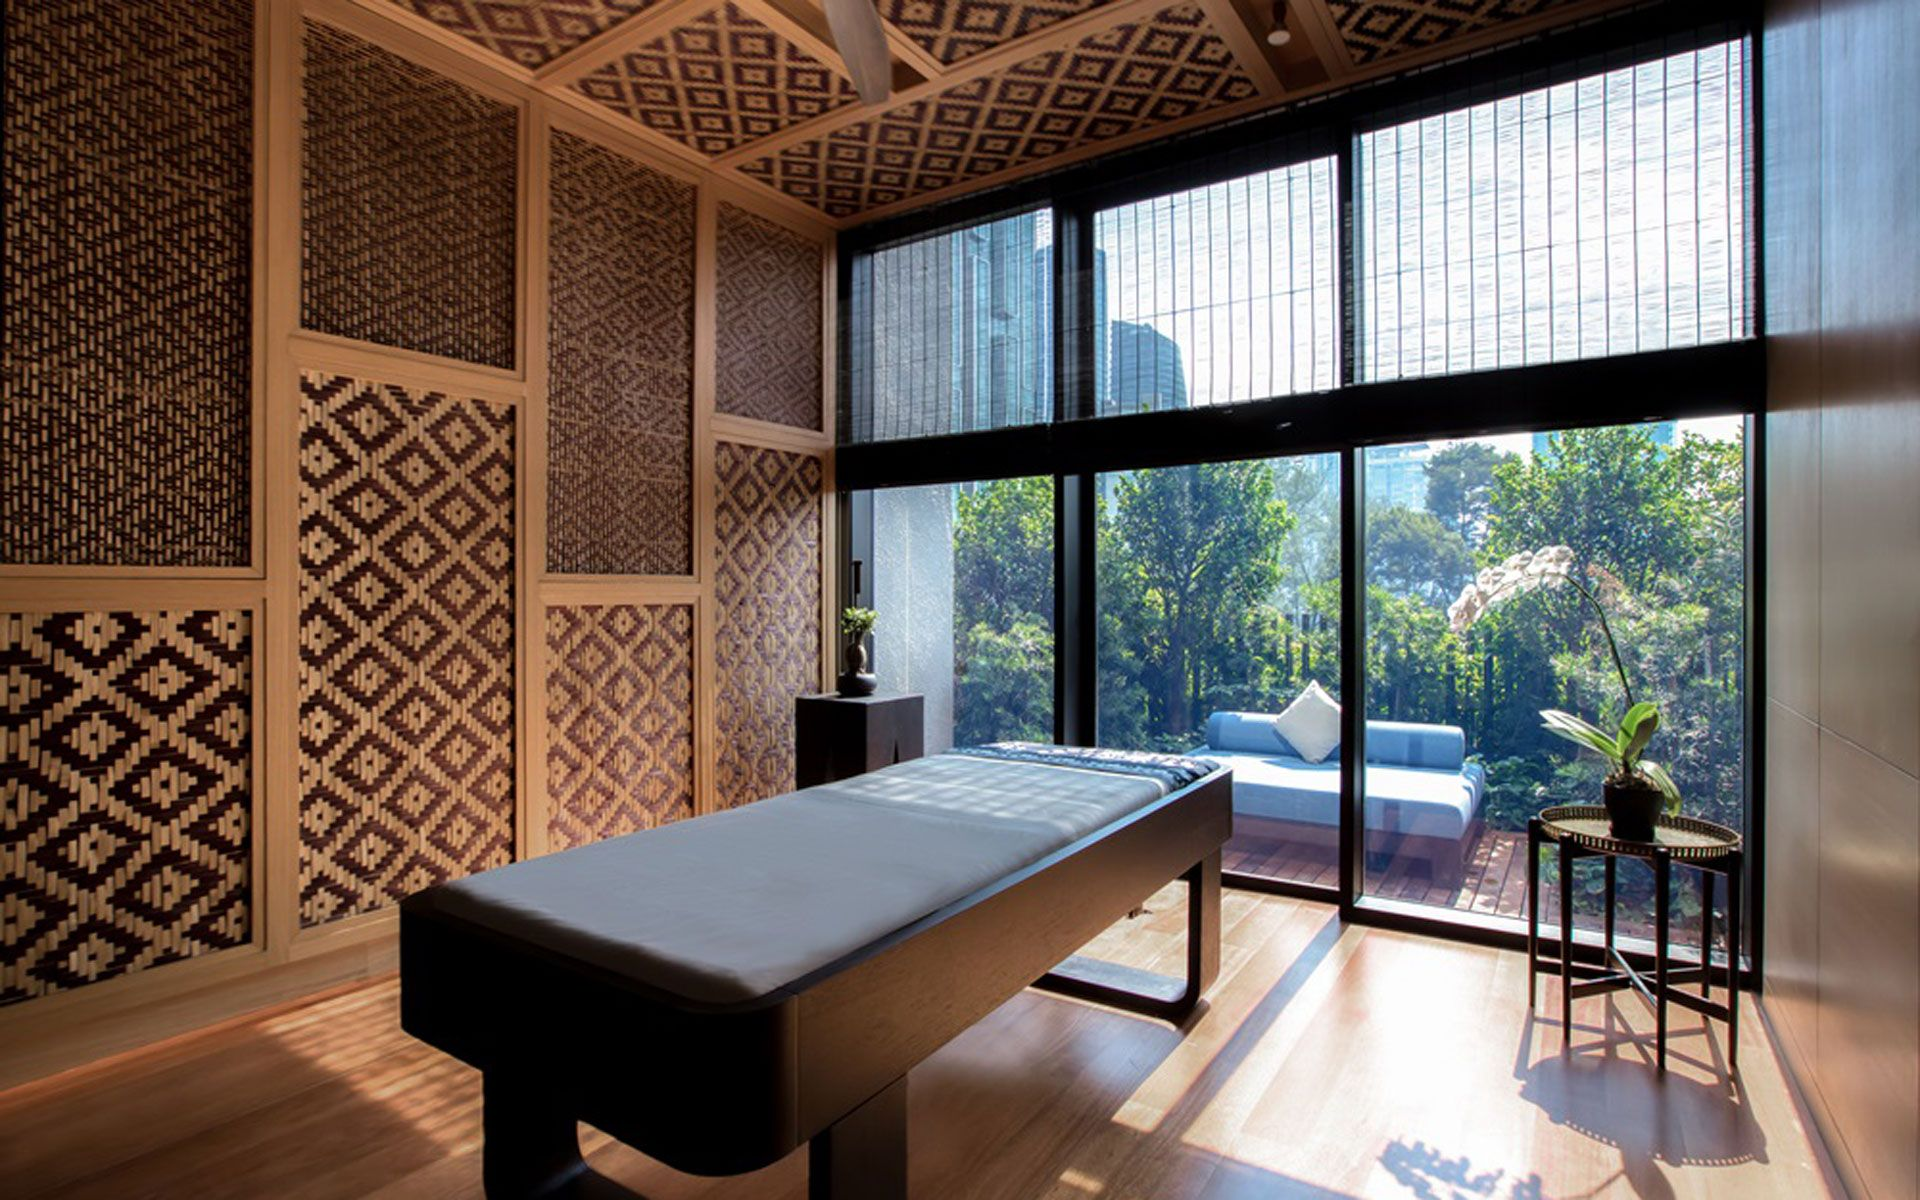 10 Spas In The Klang Valley For Some Quality 'Me' Time